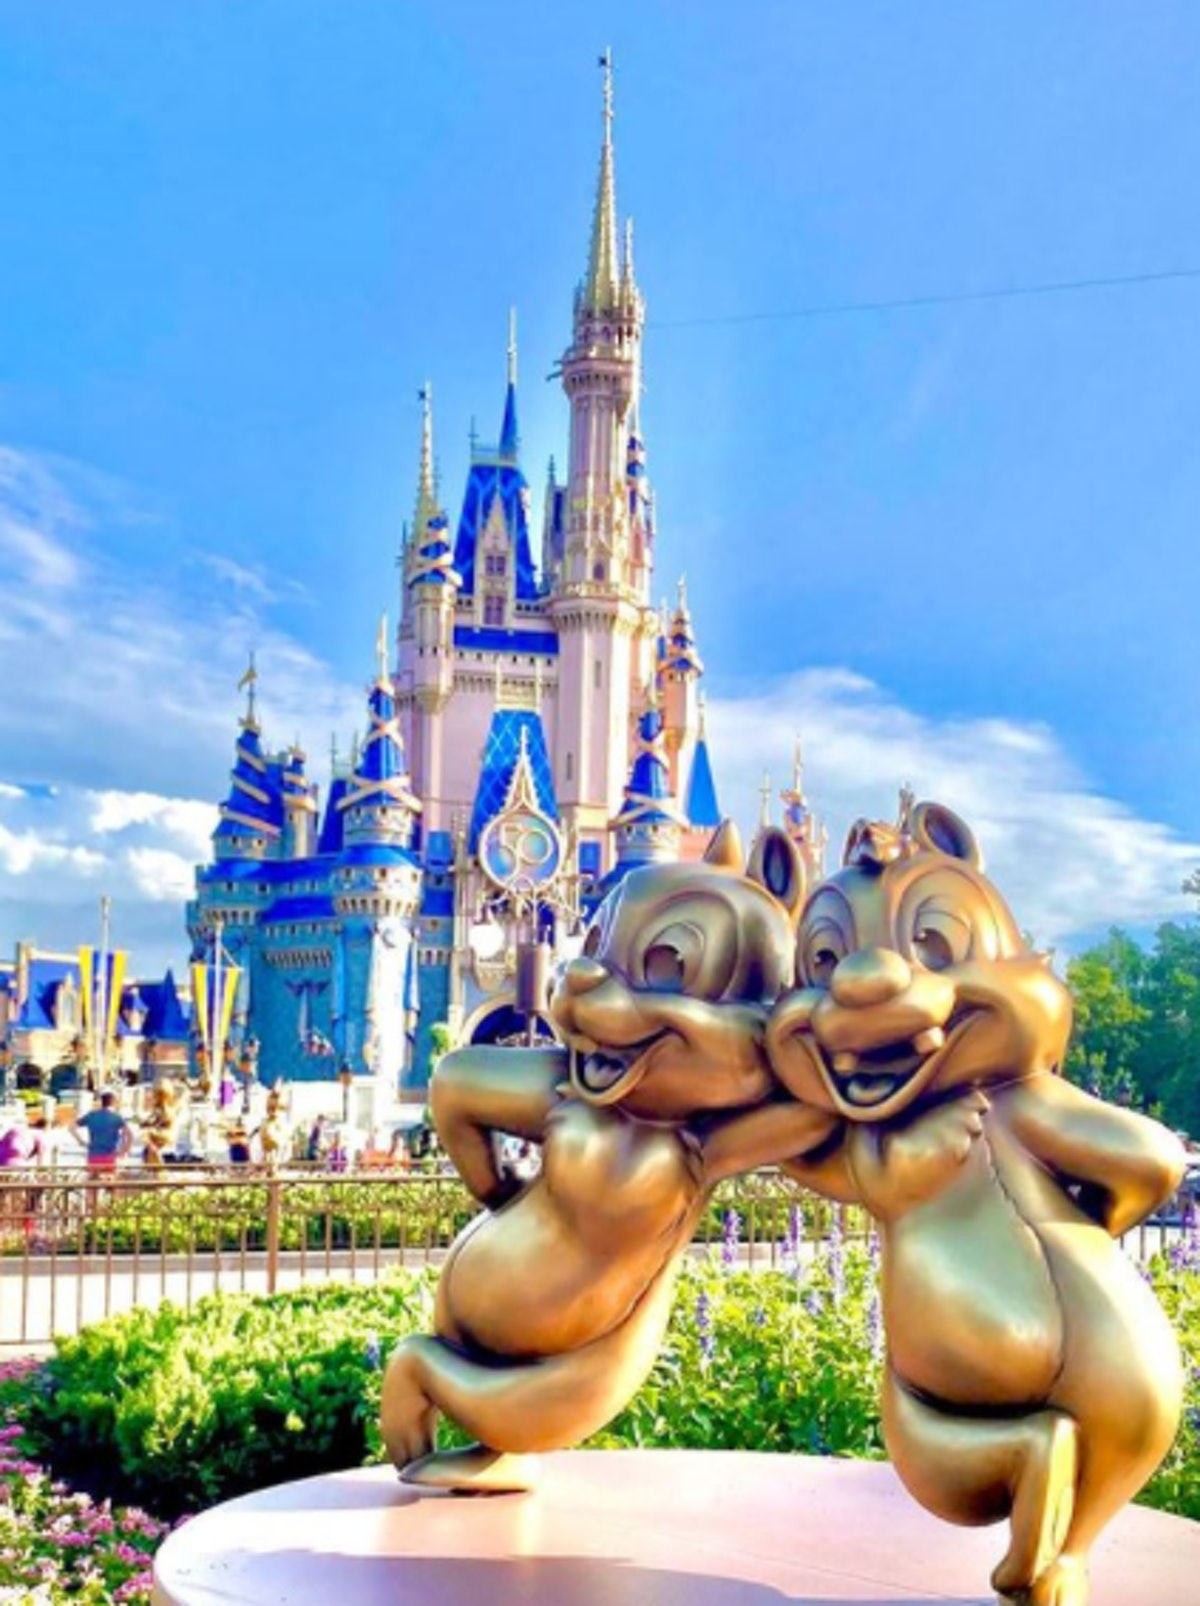 These photos of Disney's gold statues for the 50th anniversary include an adorable Chip and Dale.